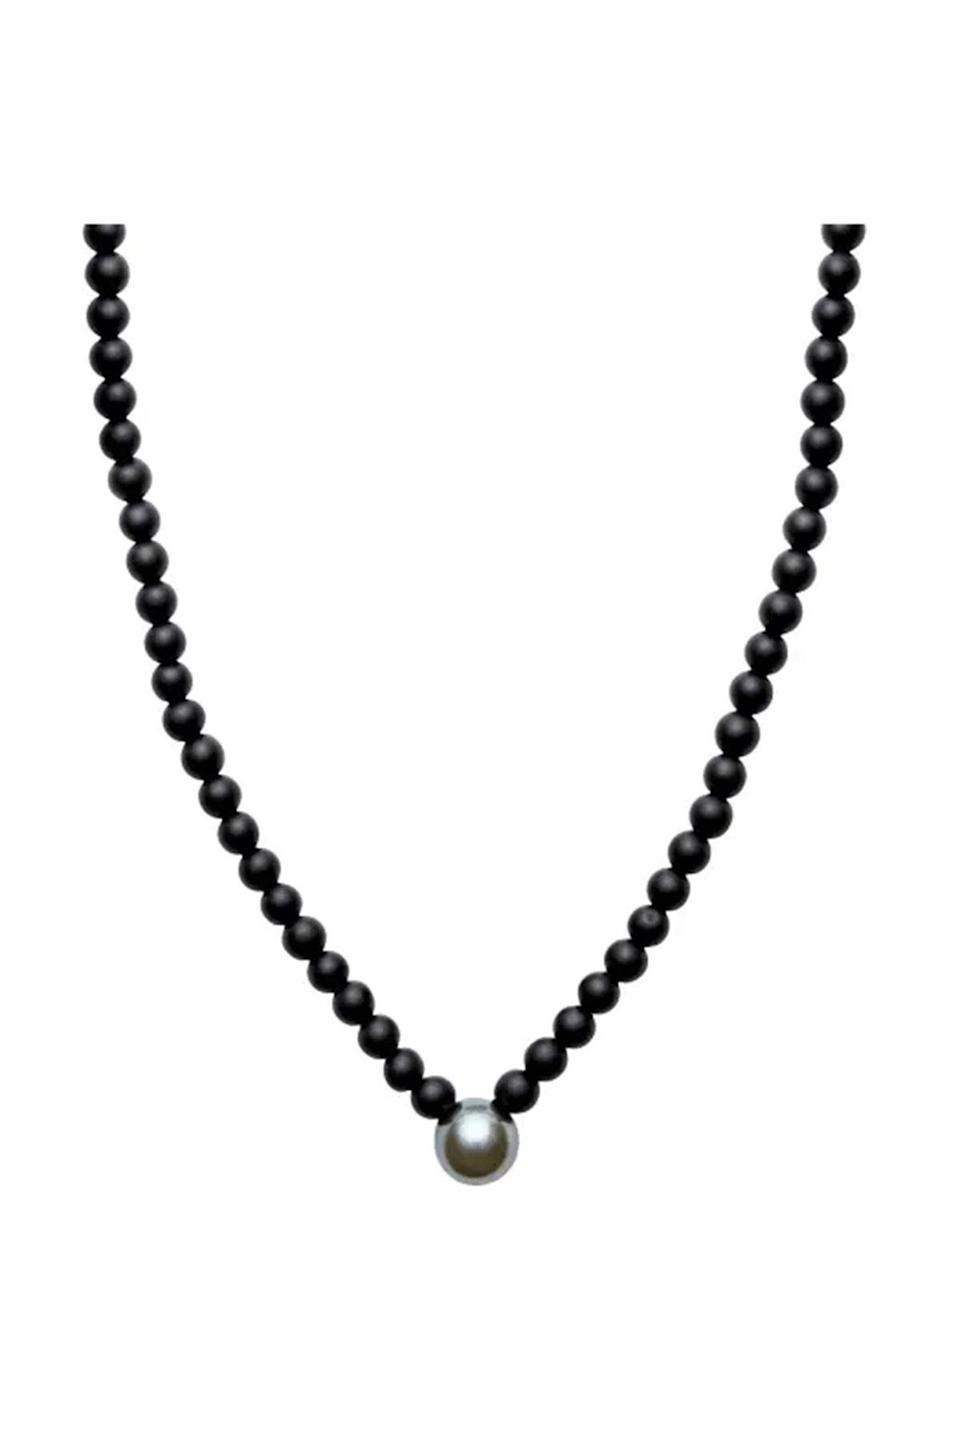 """<p><strong>ORA Pearls</strong></p><p>wolfandbadger.com</p><p><strong>$356.00</strong></p><p><a href=""""https://go.redirectingat.com?id=74968X1596630&url=https%3A%2F%2Fwww.wolfandbadger.com%2Fus%2Faro-men-s-round-tahitian-pearl-matt-onyx-v-shape-necklace%2F&sref=https%3A%2F%2Fwww.townandcountrymag.com%2Fstyle%2Fjewelry-and-watches%2Fg36793443%2Fbest-mens-pearl-jewelry%2F"""" rel=""""nofollow noopener"""" target=""""_blank"""" data-ylk=""""slk:Shop Now"""" class=""""link rapid-noclick-resp"""">Shop Now</a></p><p>This pearl and onyx necklace delivers some serious sultriness with a mix of textures and dark hues.</p>"""